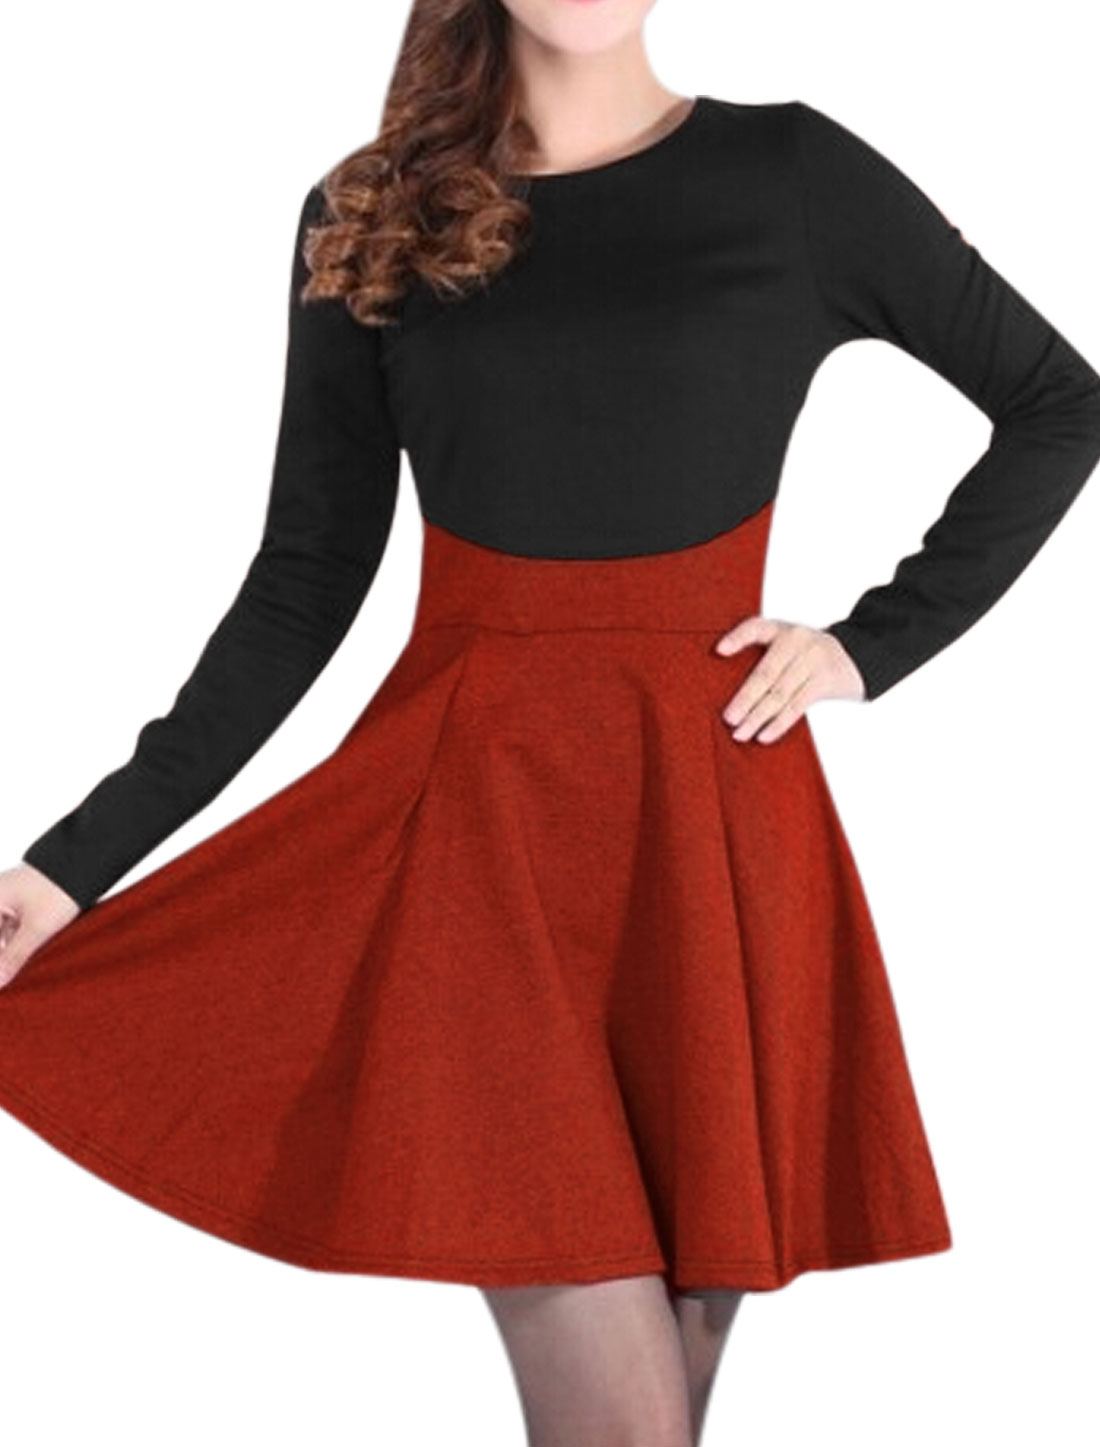 Lady Pullover Contrast Color Long Sleeve Short Dress Brick Red Black S